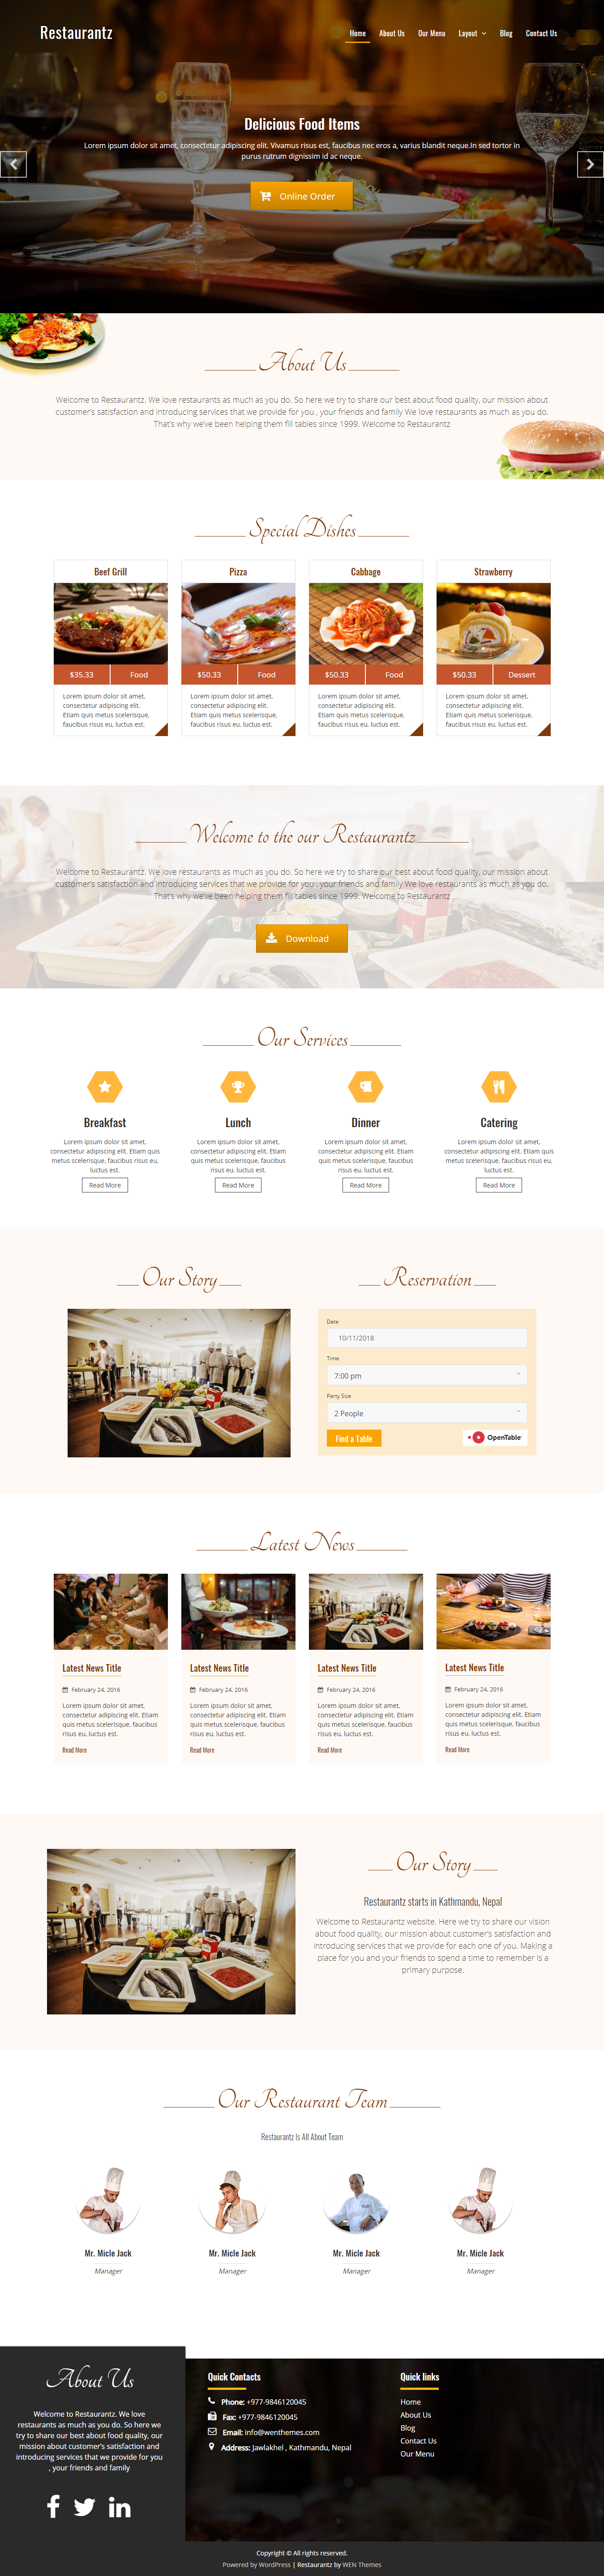 10 Best Free Restaurant Food WordPress Themes Accesspress